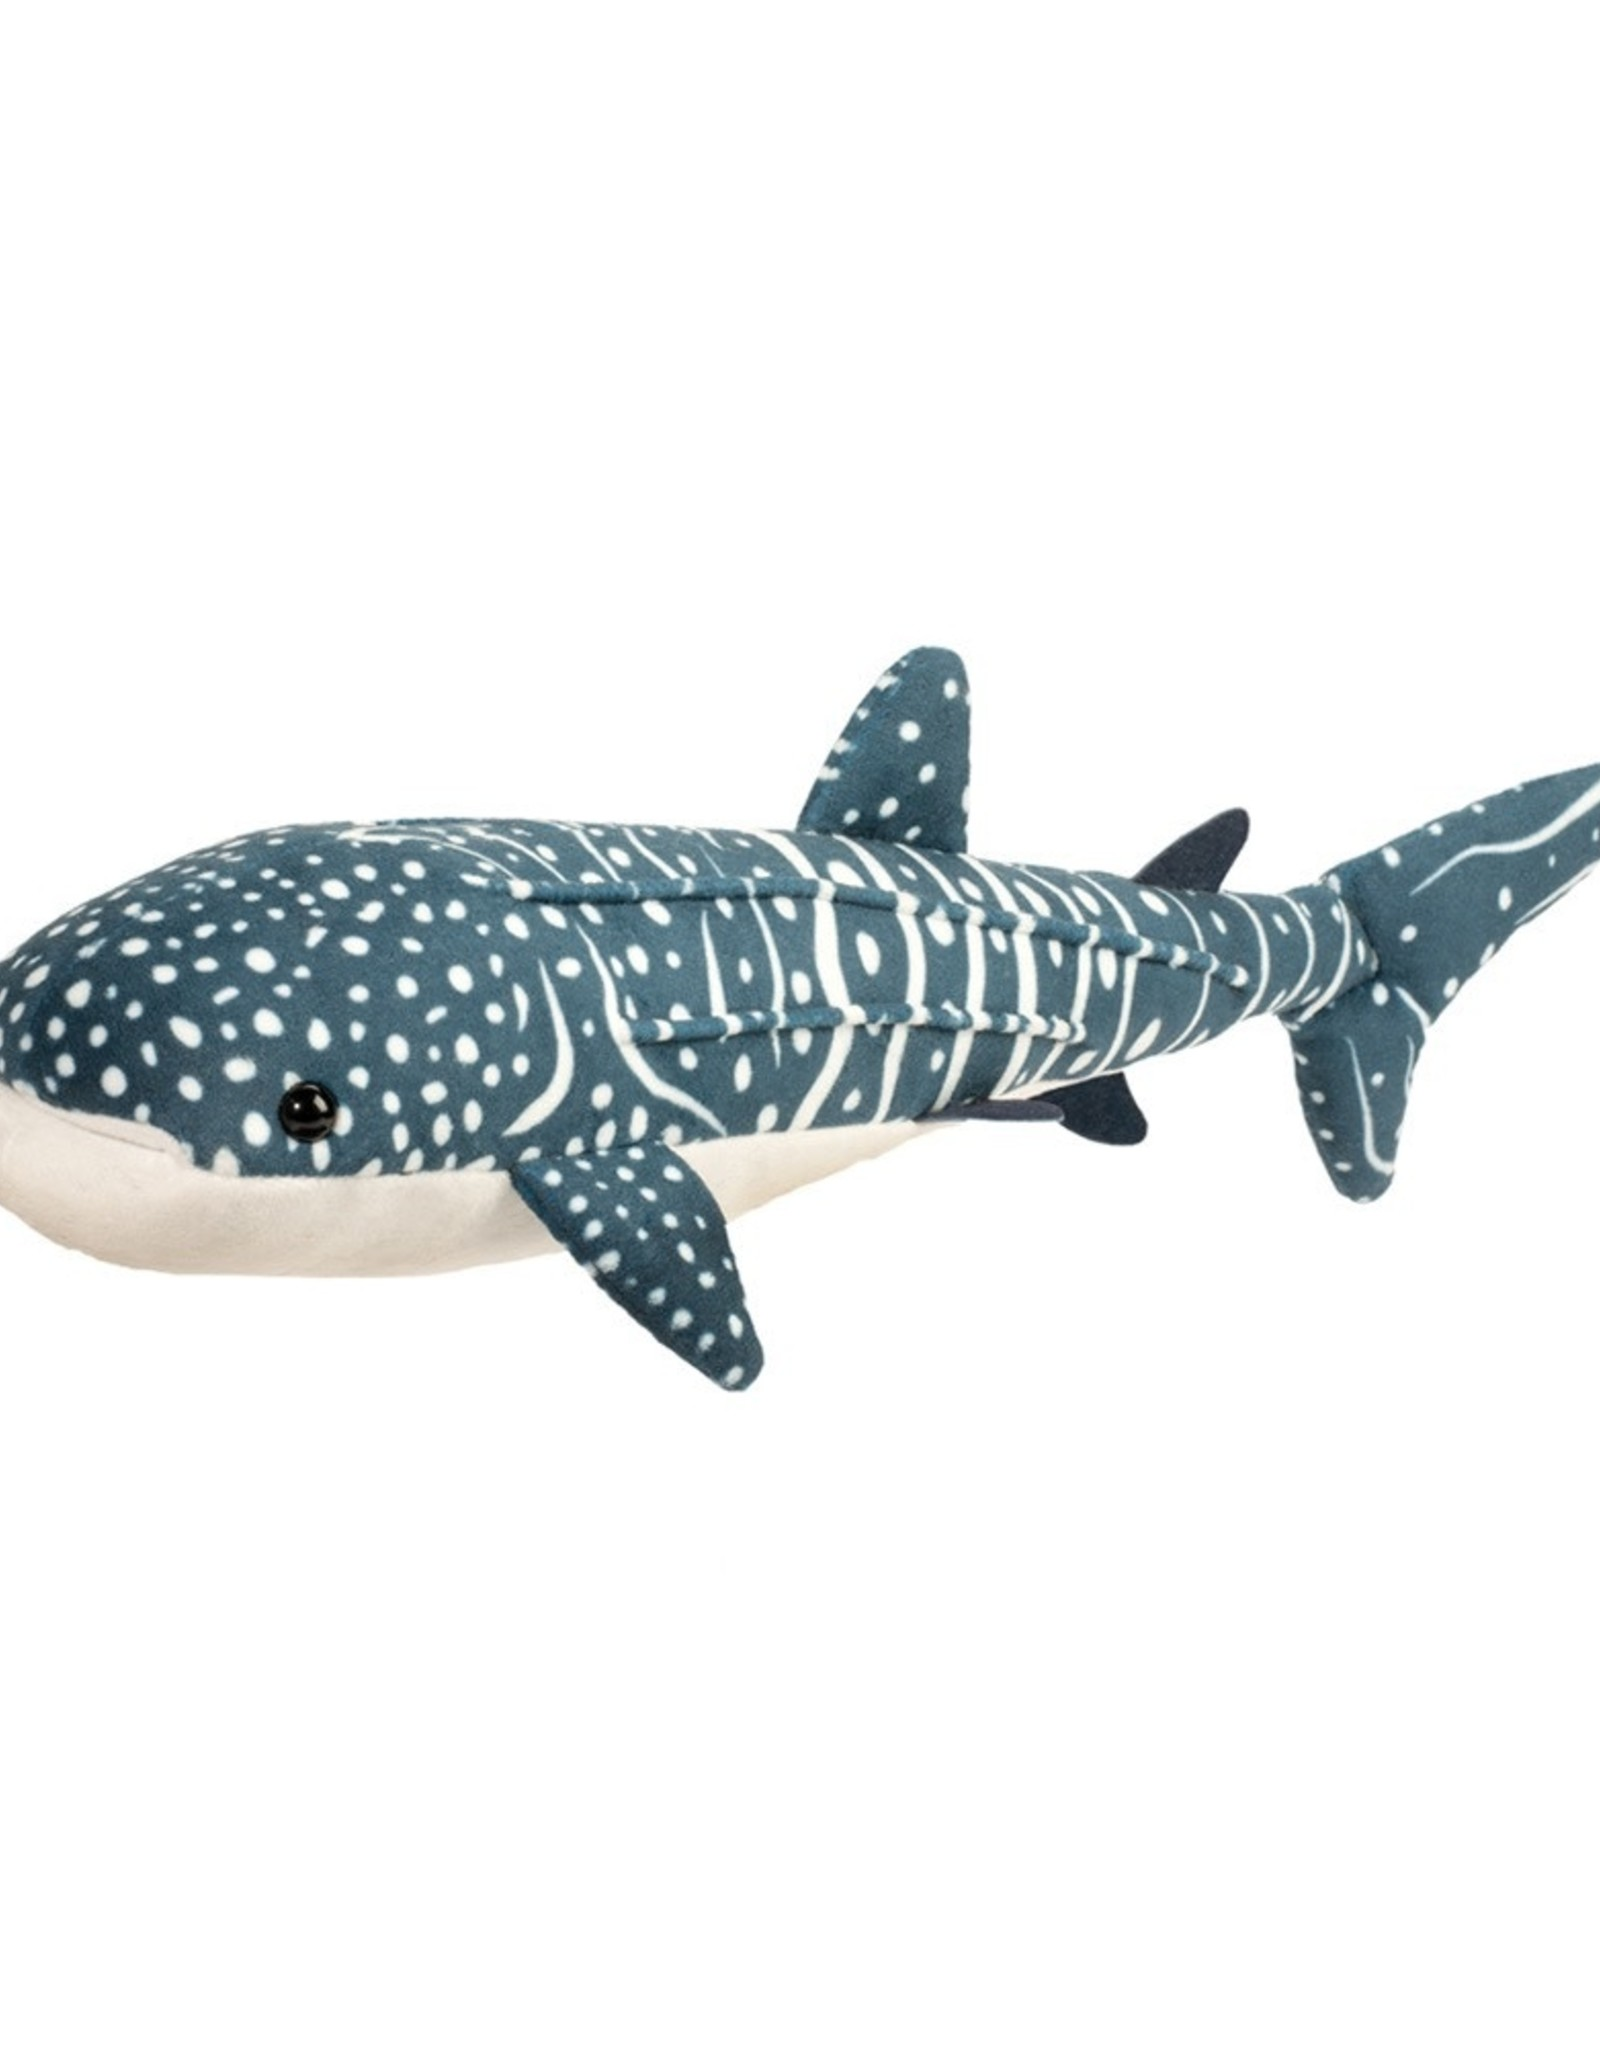 Douglas Decker Whale Shark, small